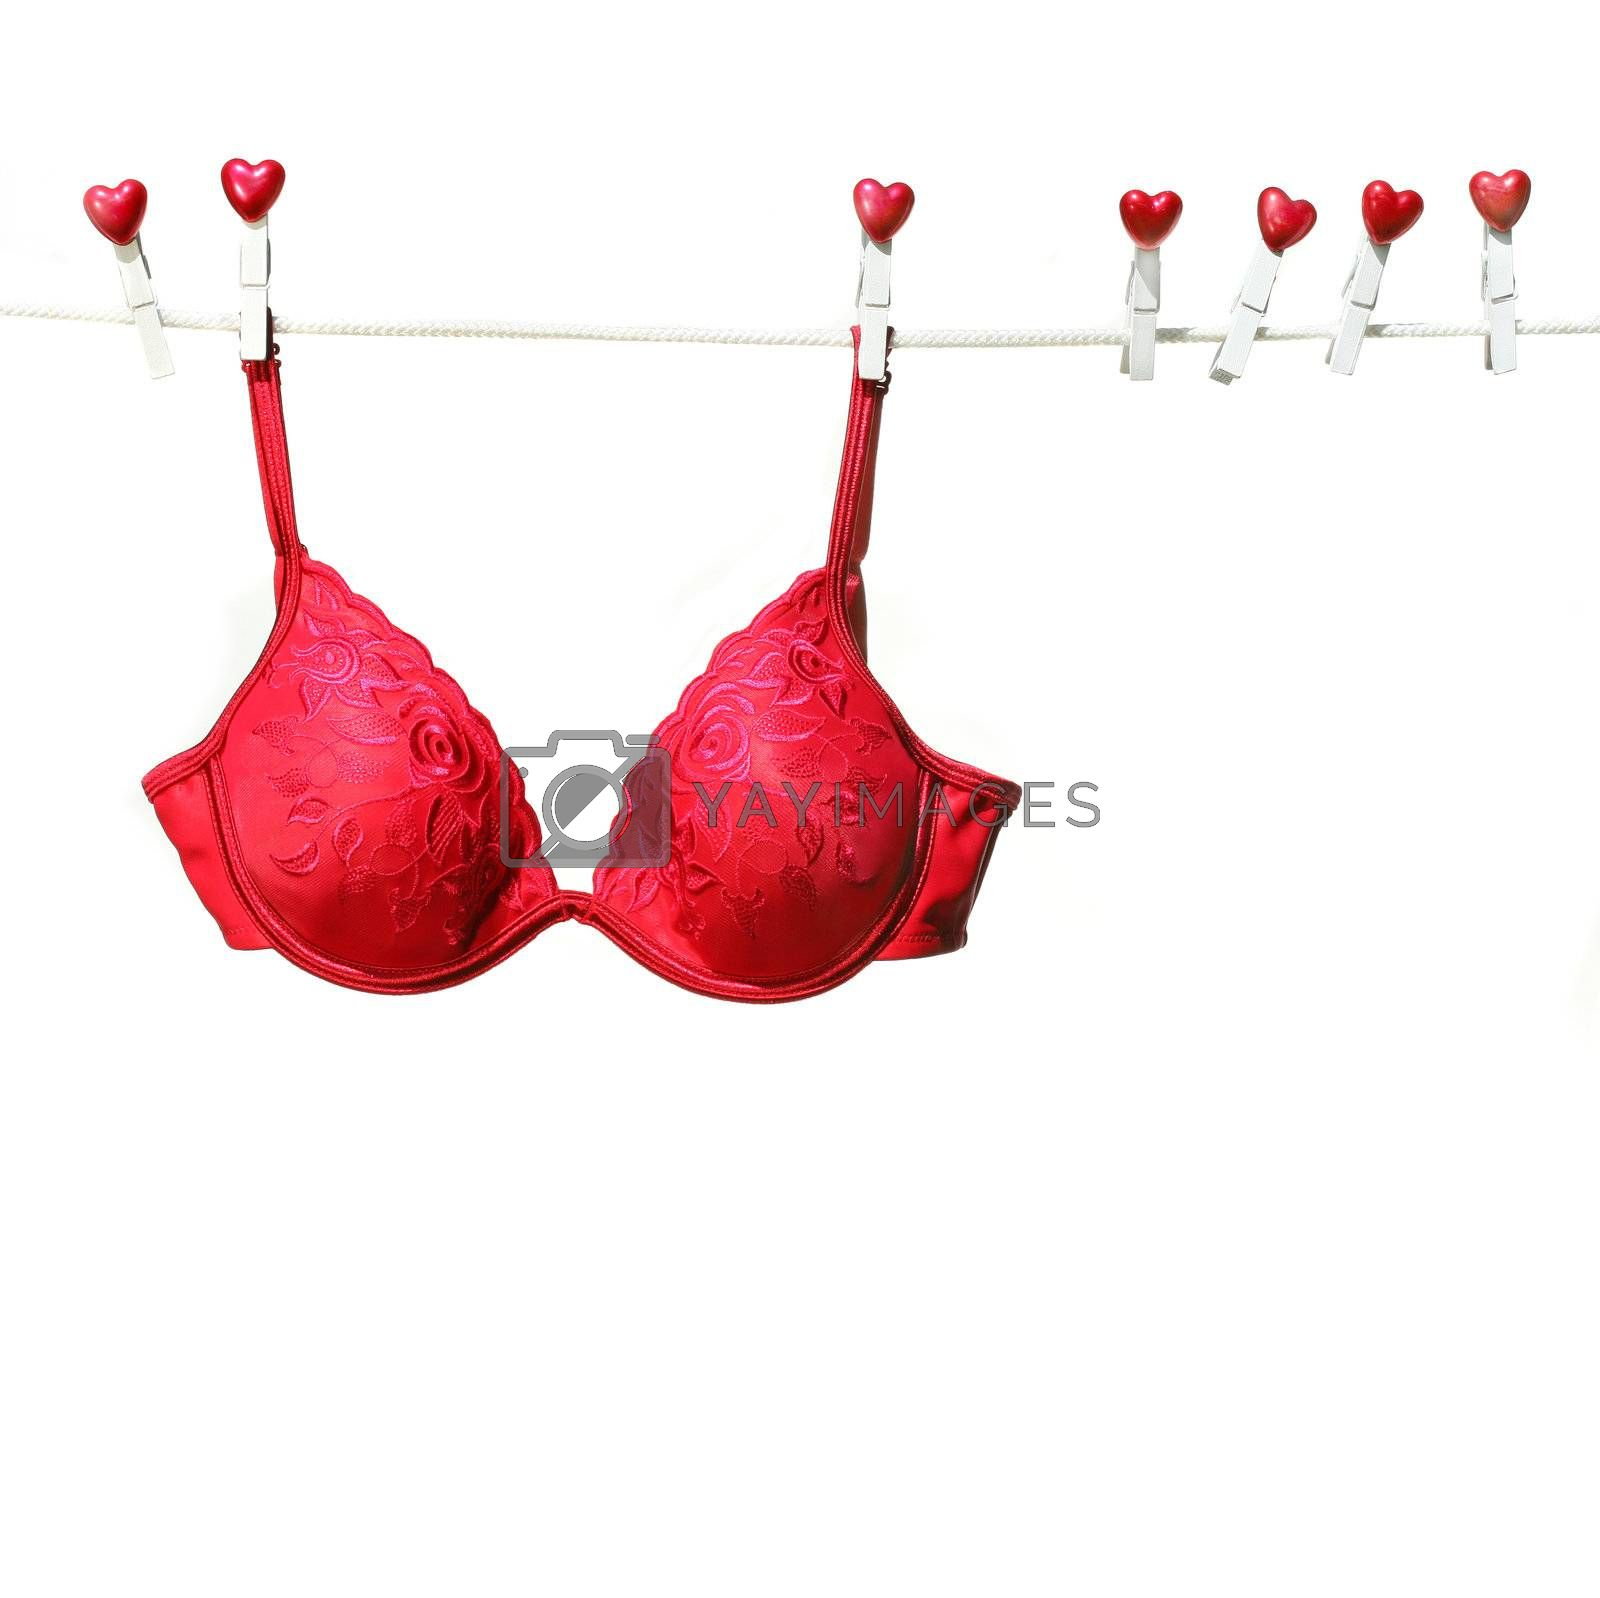 Fancy red bra hanging on clothesline with white background